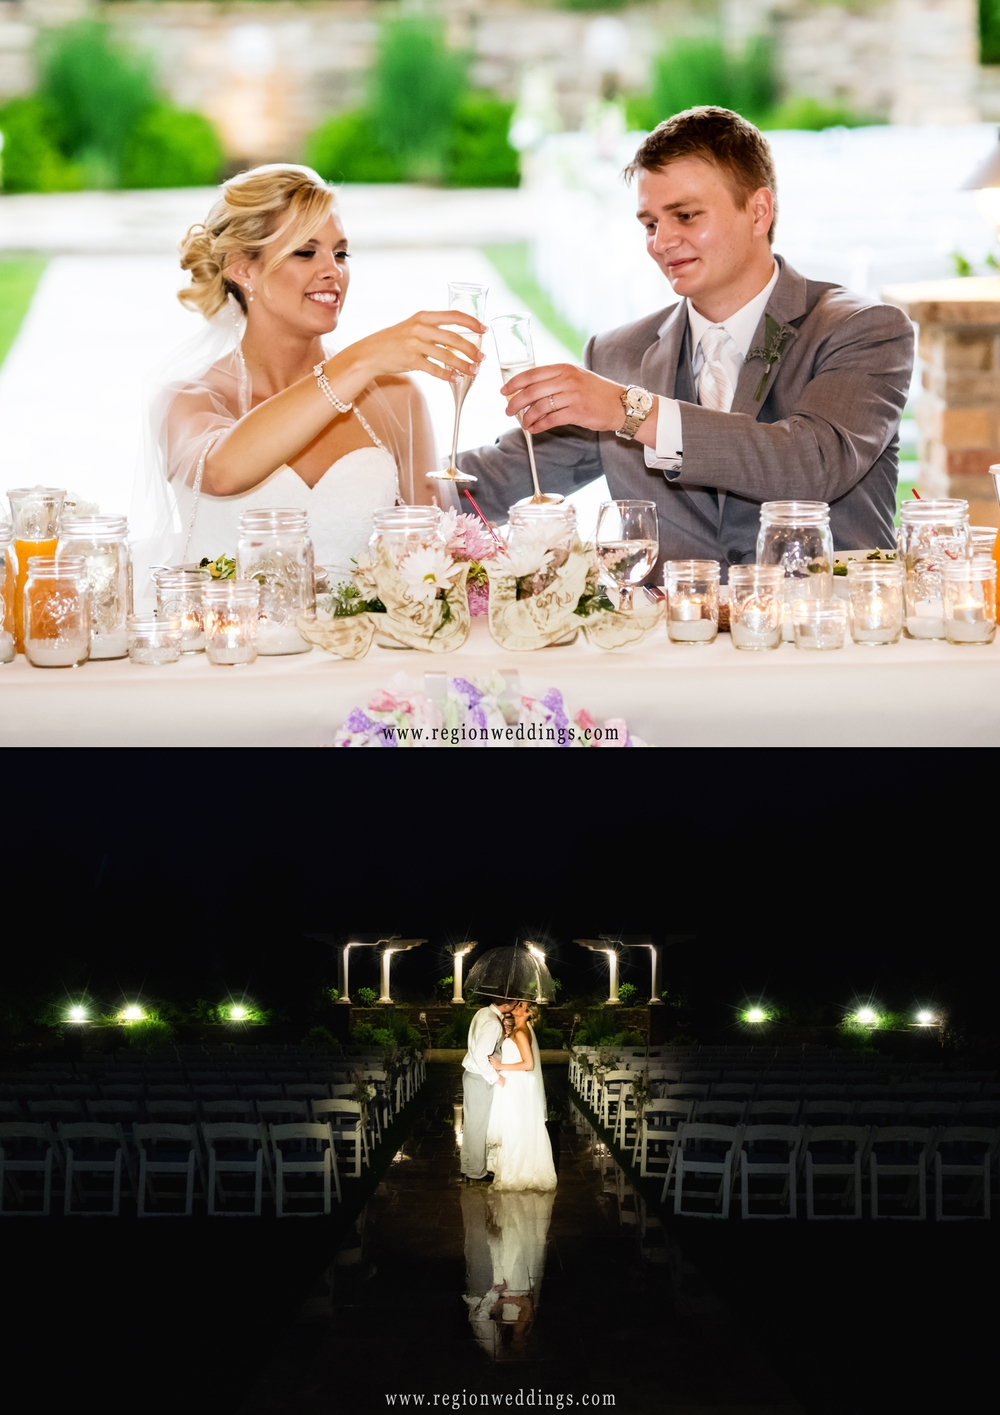 sandy-pines-wedding-venue-collage.jpg